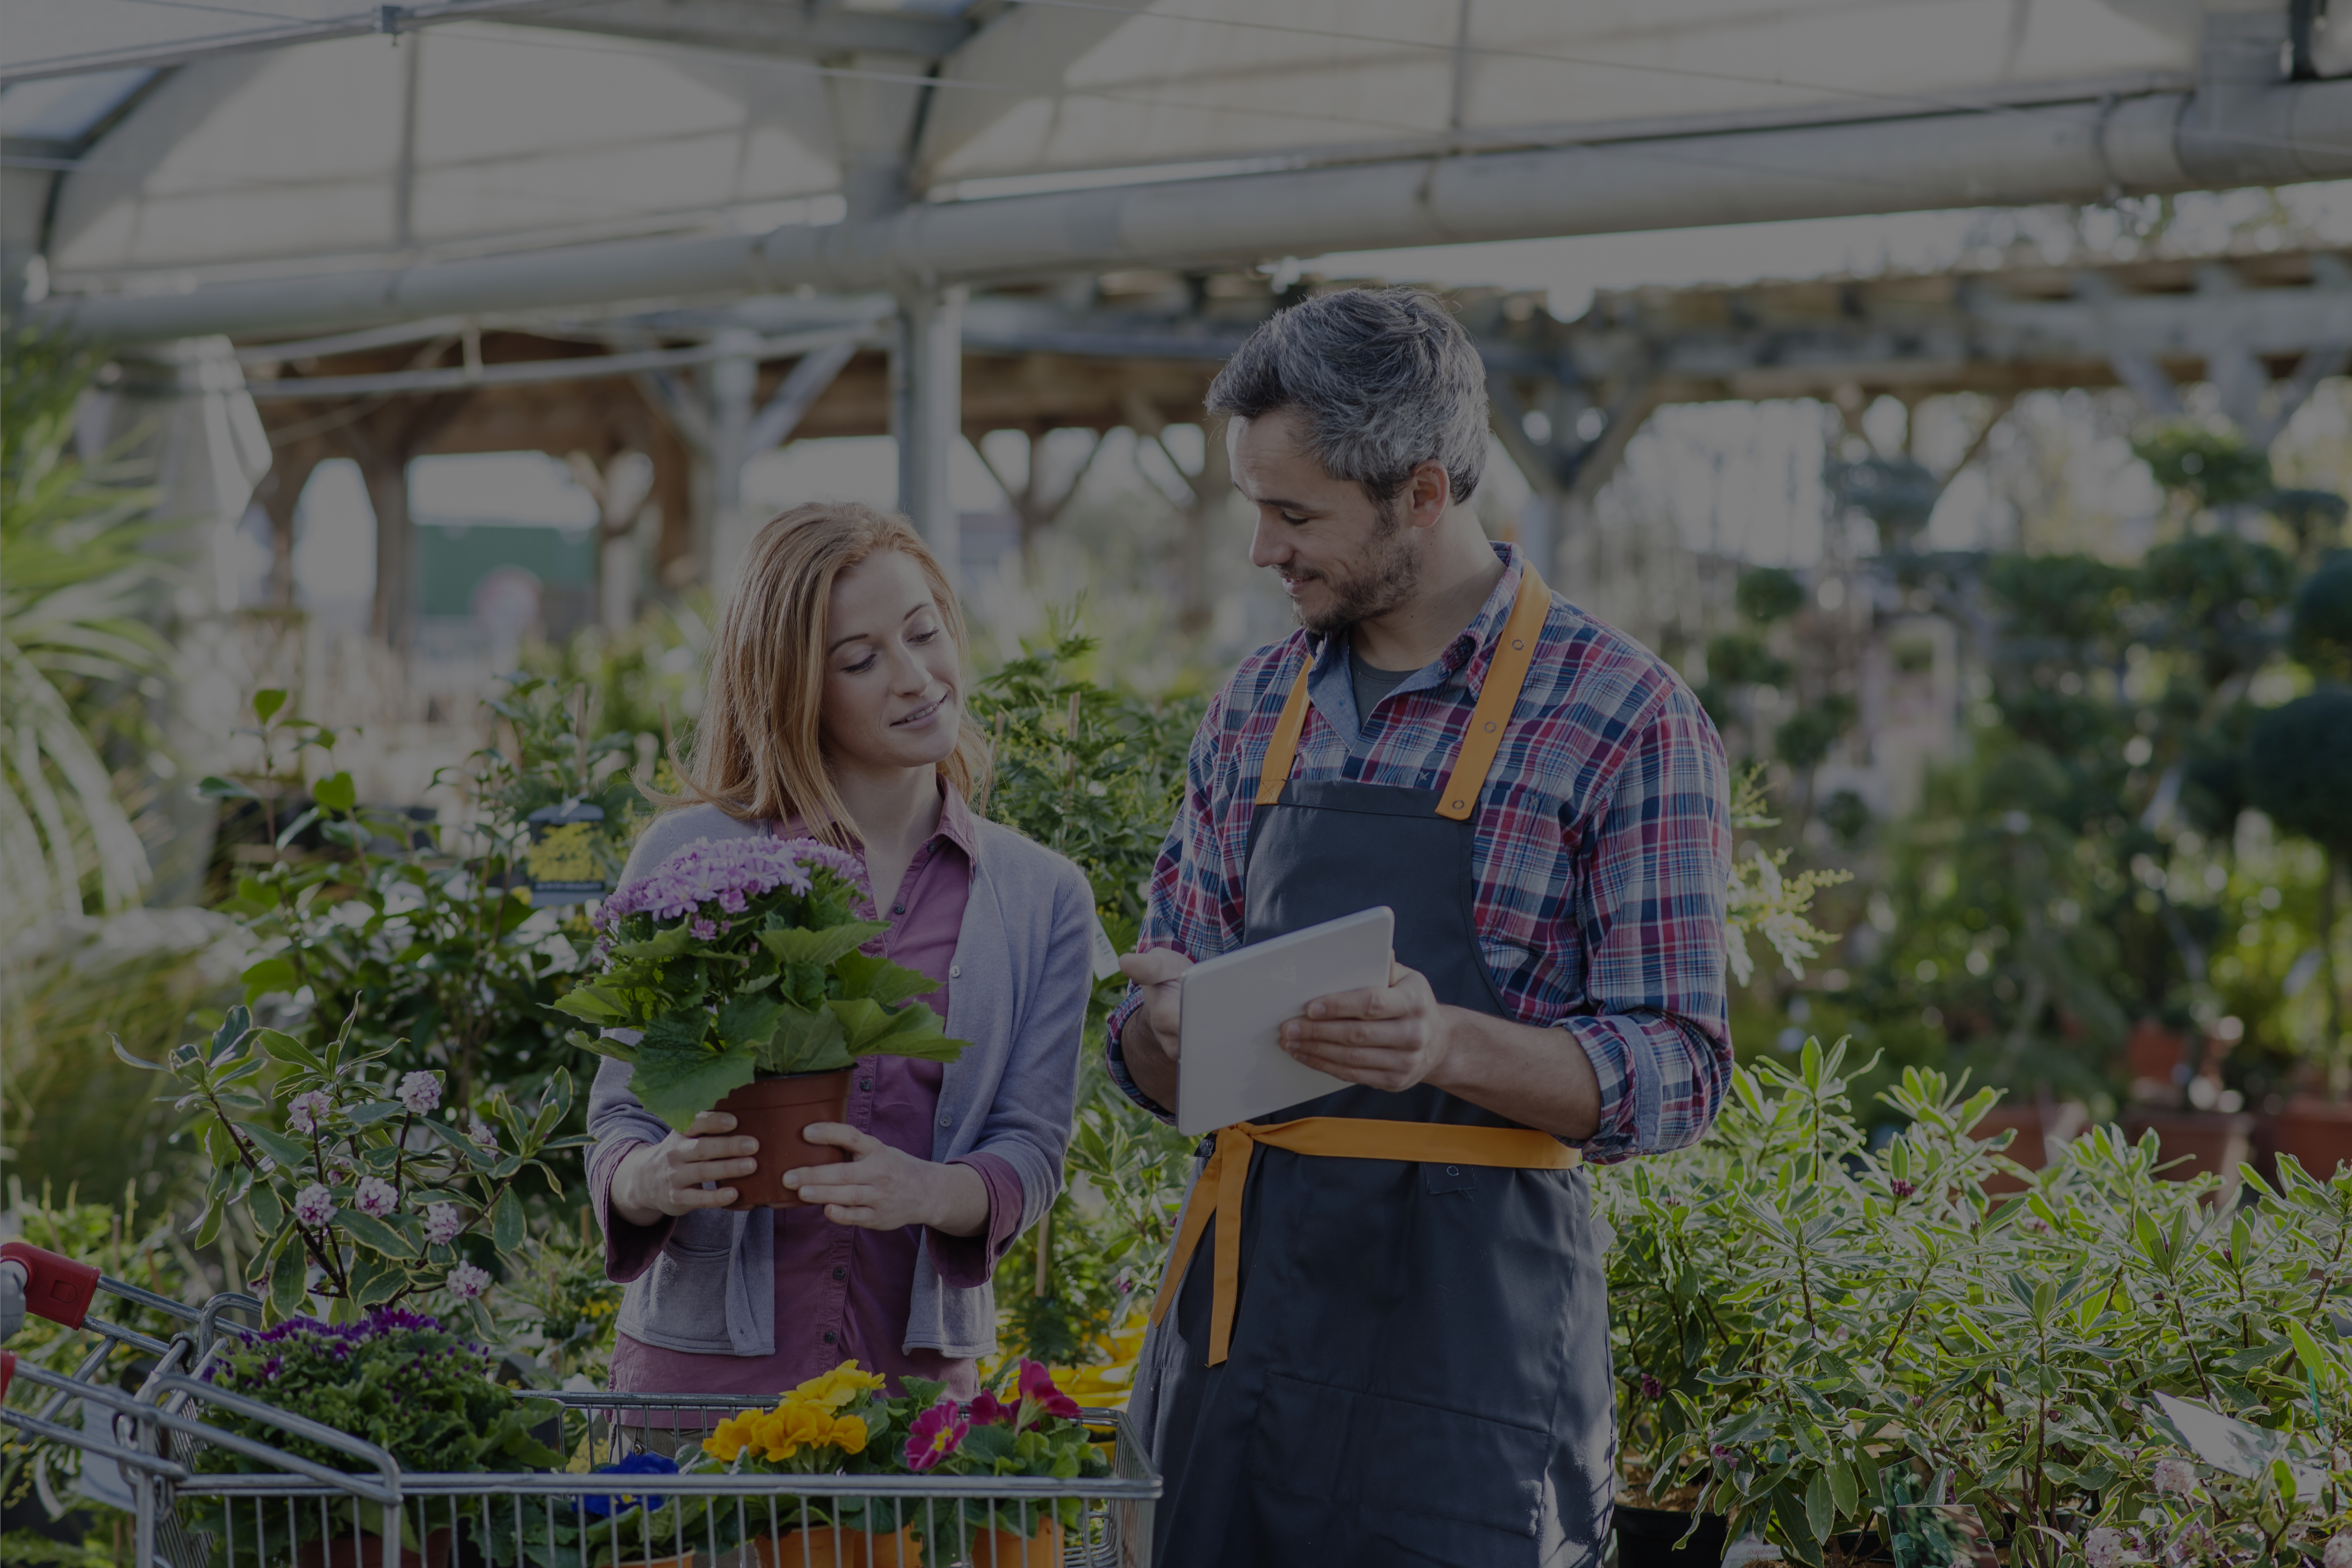 Changing Negative Attitudes To Safety In Garden Centres